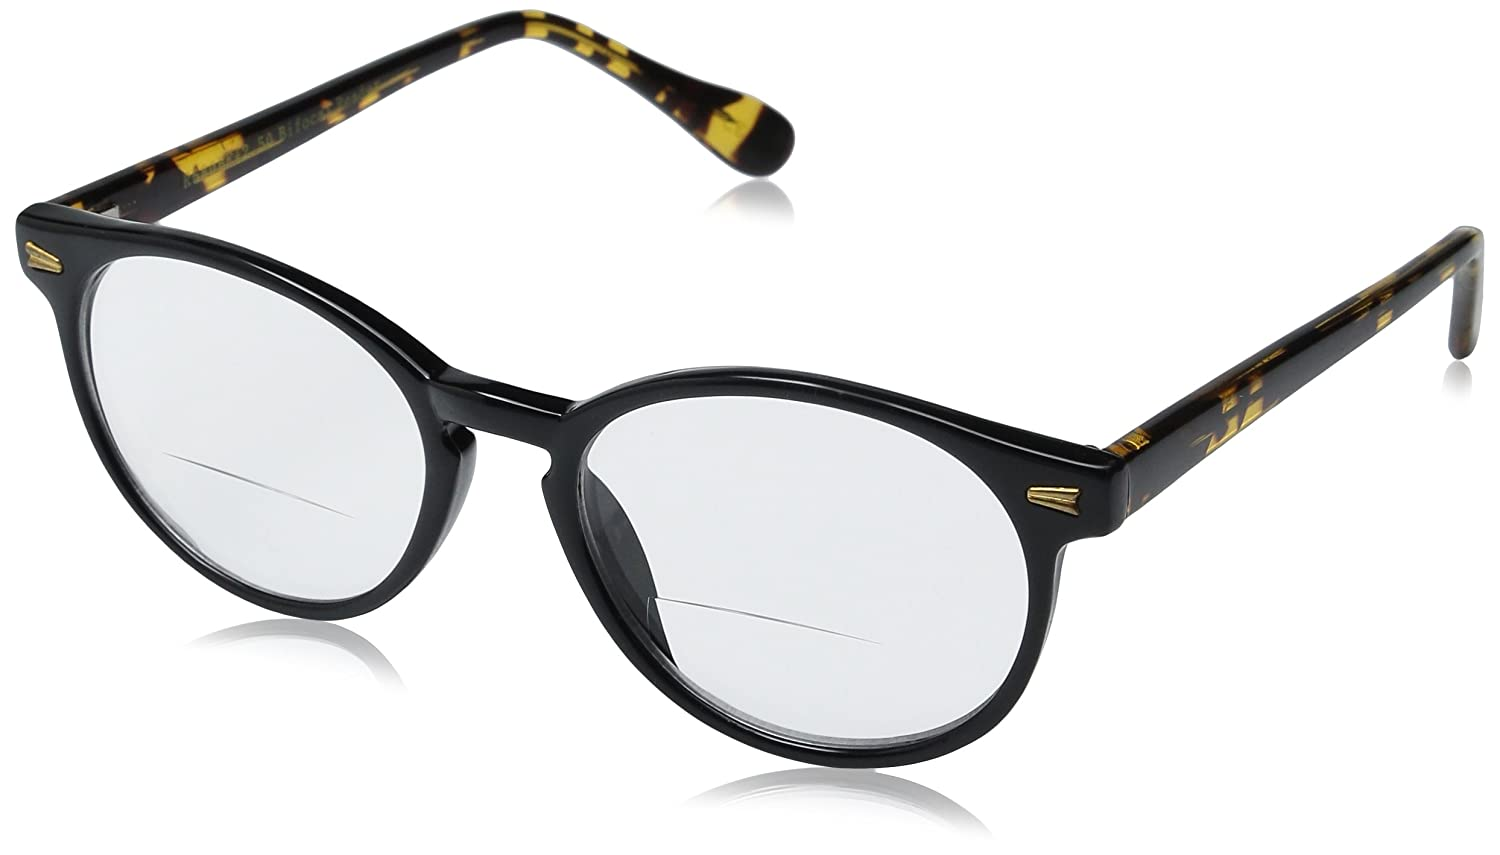 dda25a2775fa Amazon.com: Readers.com Bifocal Reading Glasses: The Actor Bifocal, Trendy  Round Bifocal Reader for Women and Men - Black and Tortoise, 1.25: Shoes